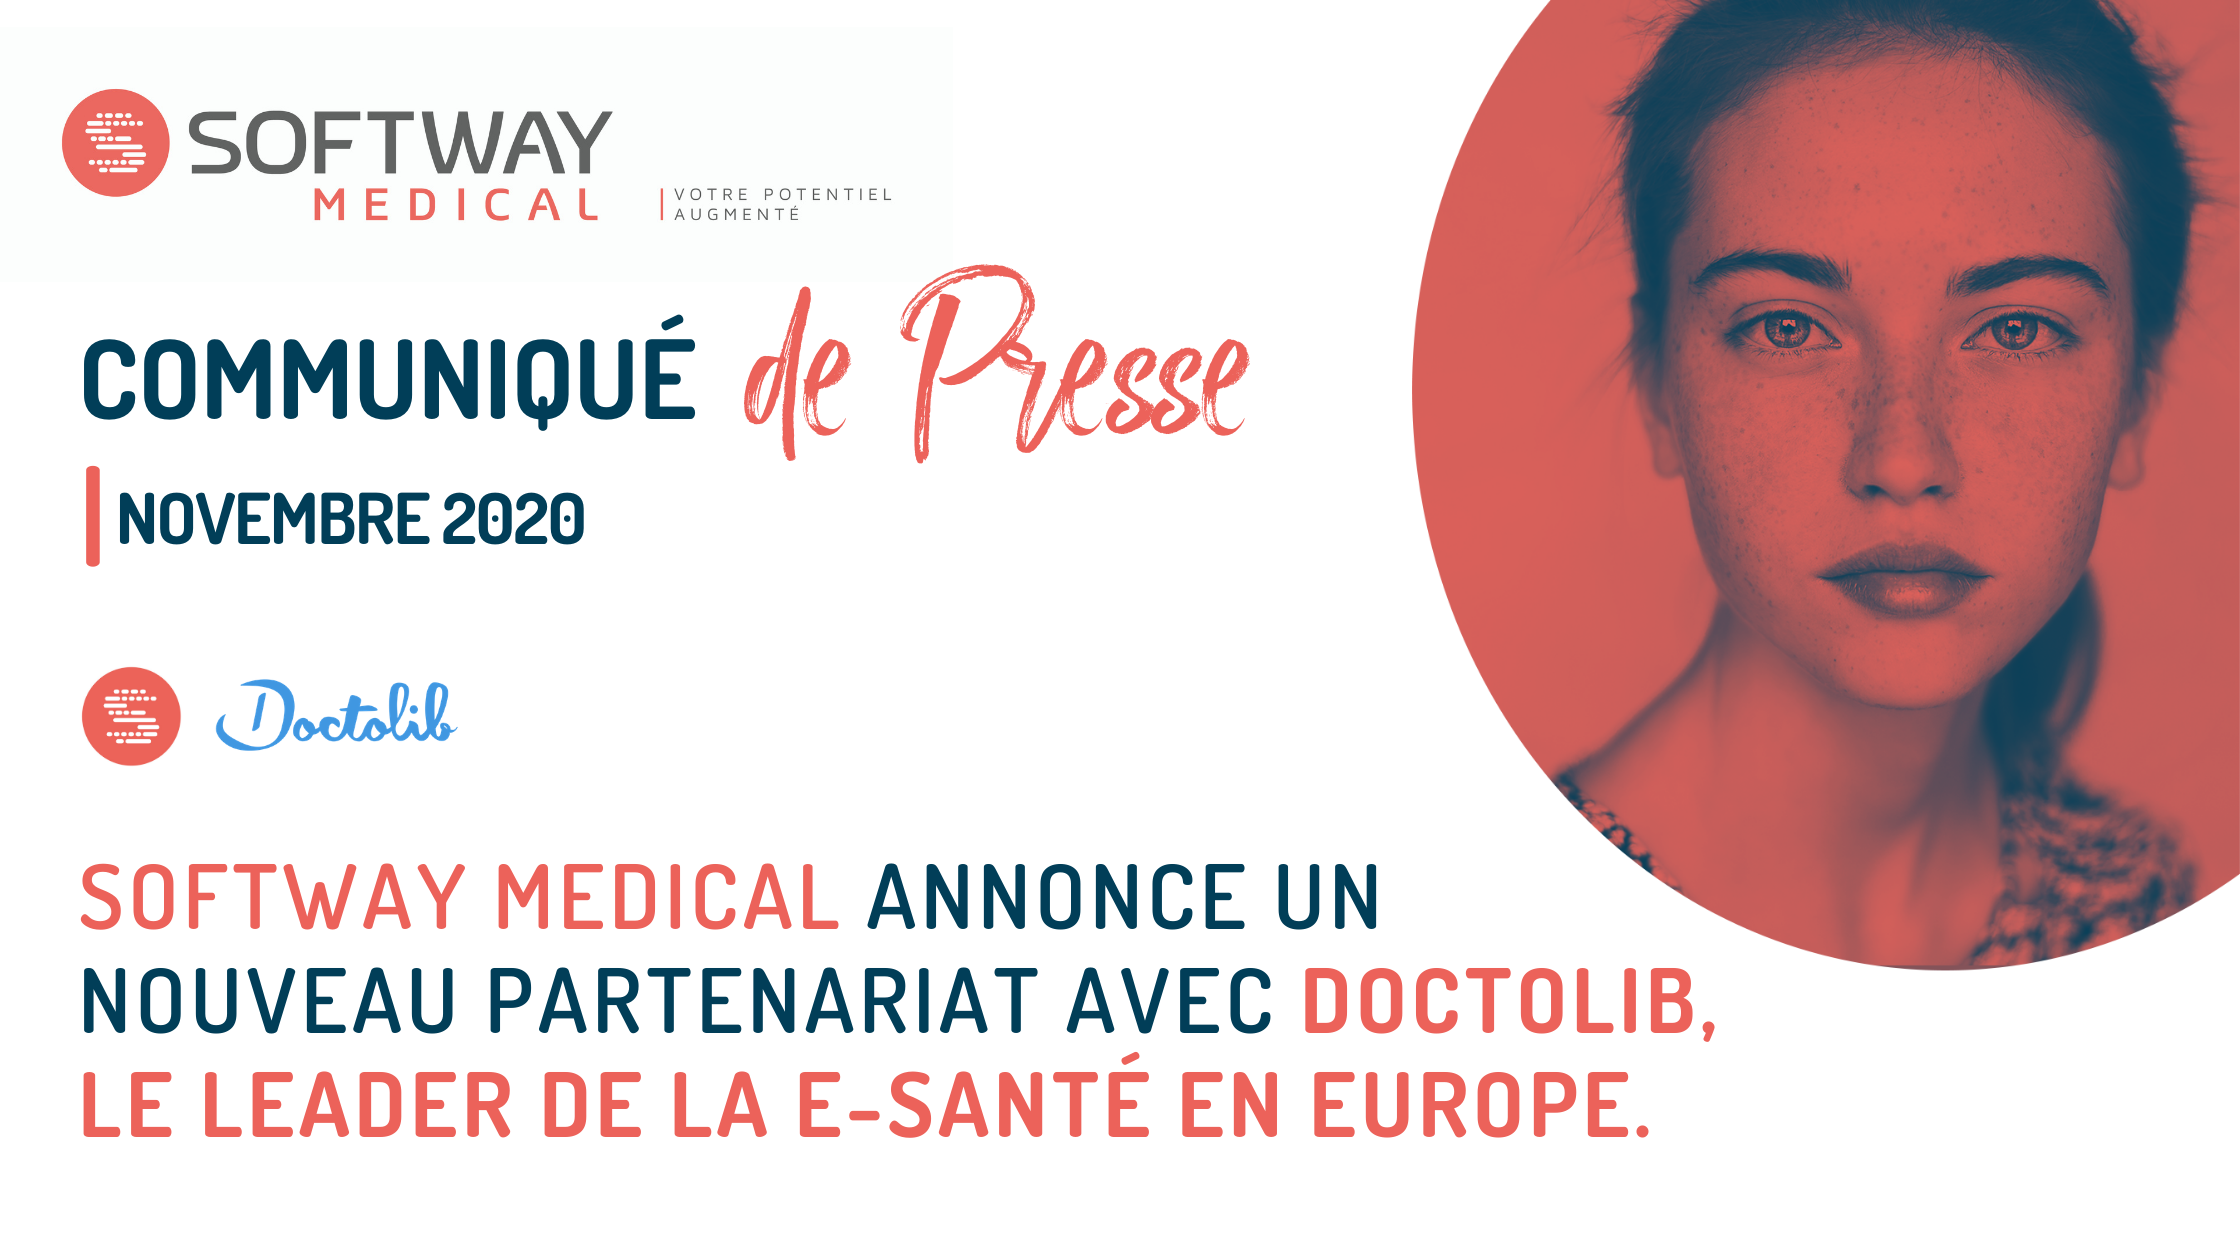 Partenariat entre Softway Medical et Doctolib